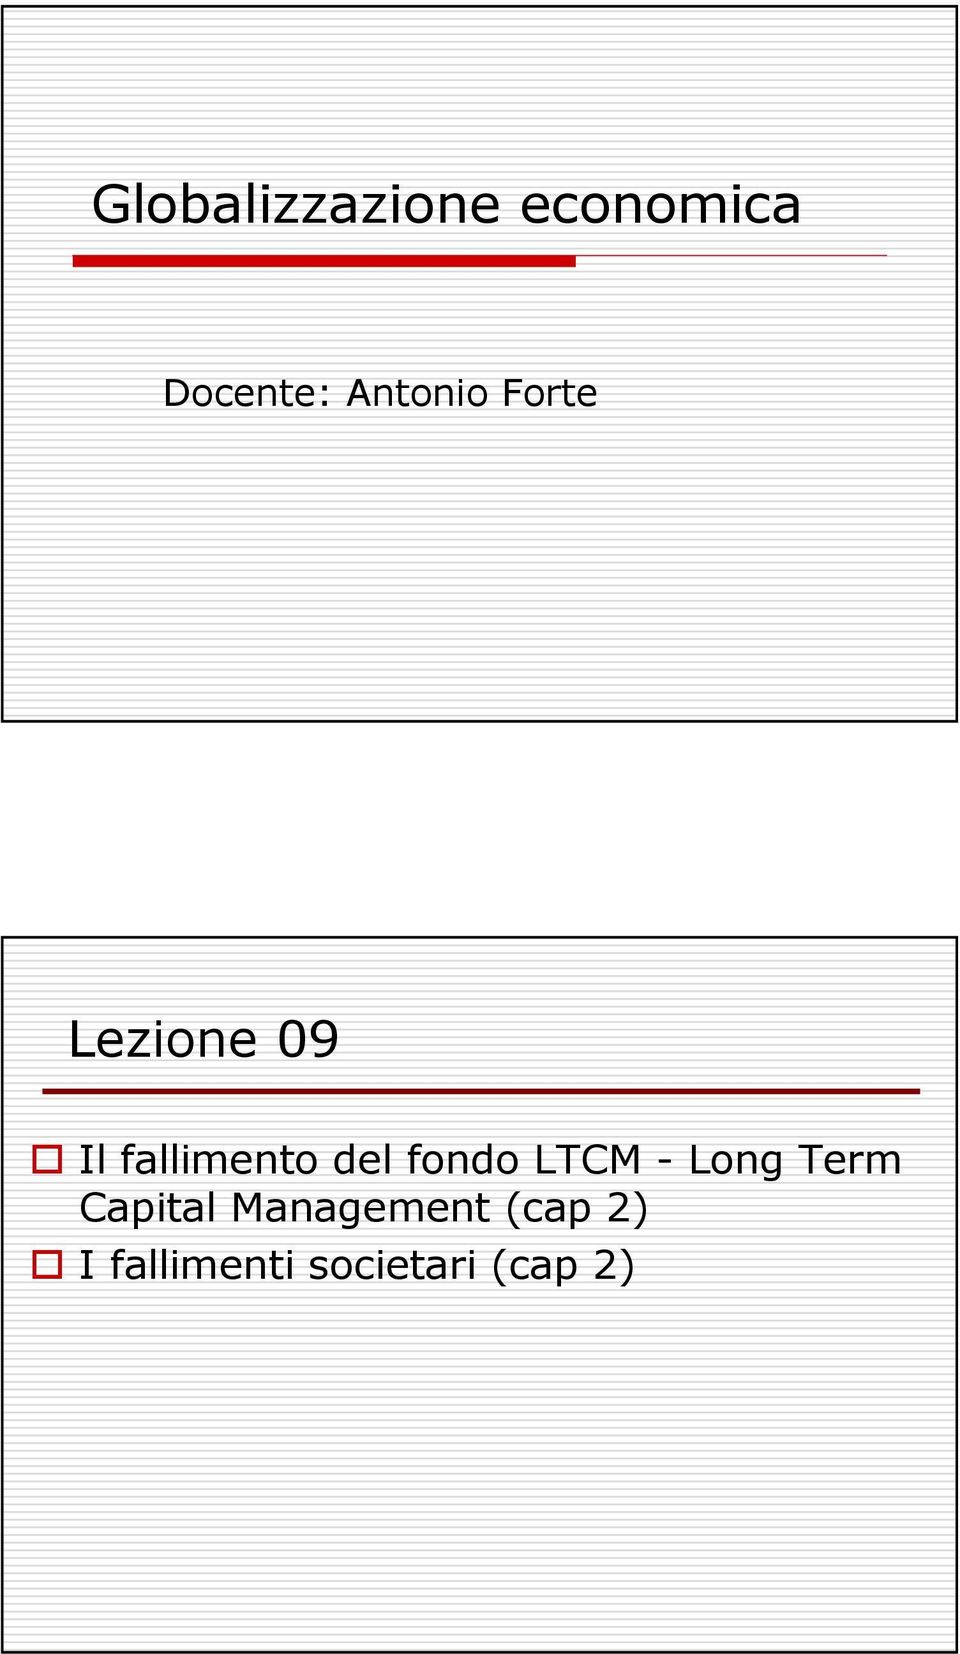 del fondo LTCM - Long Term Capital